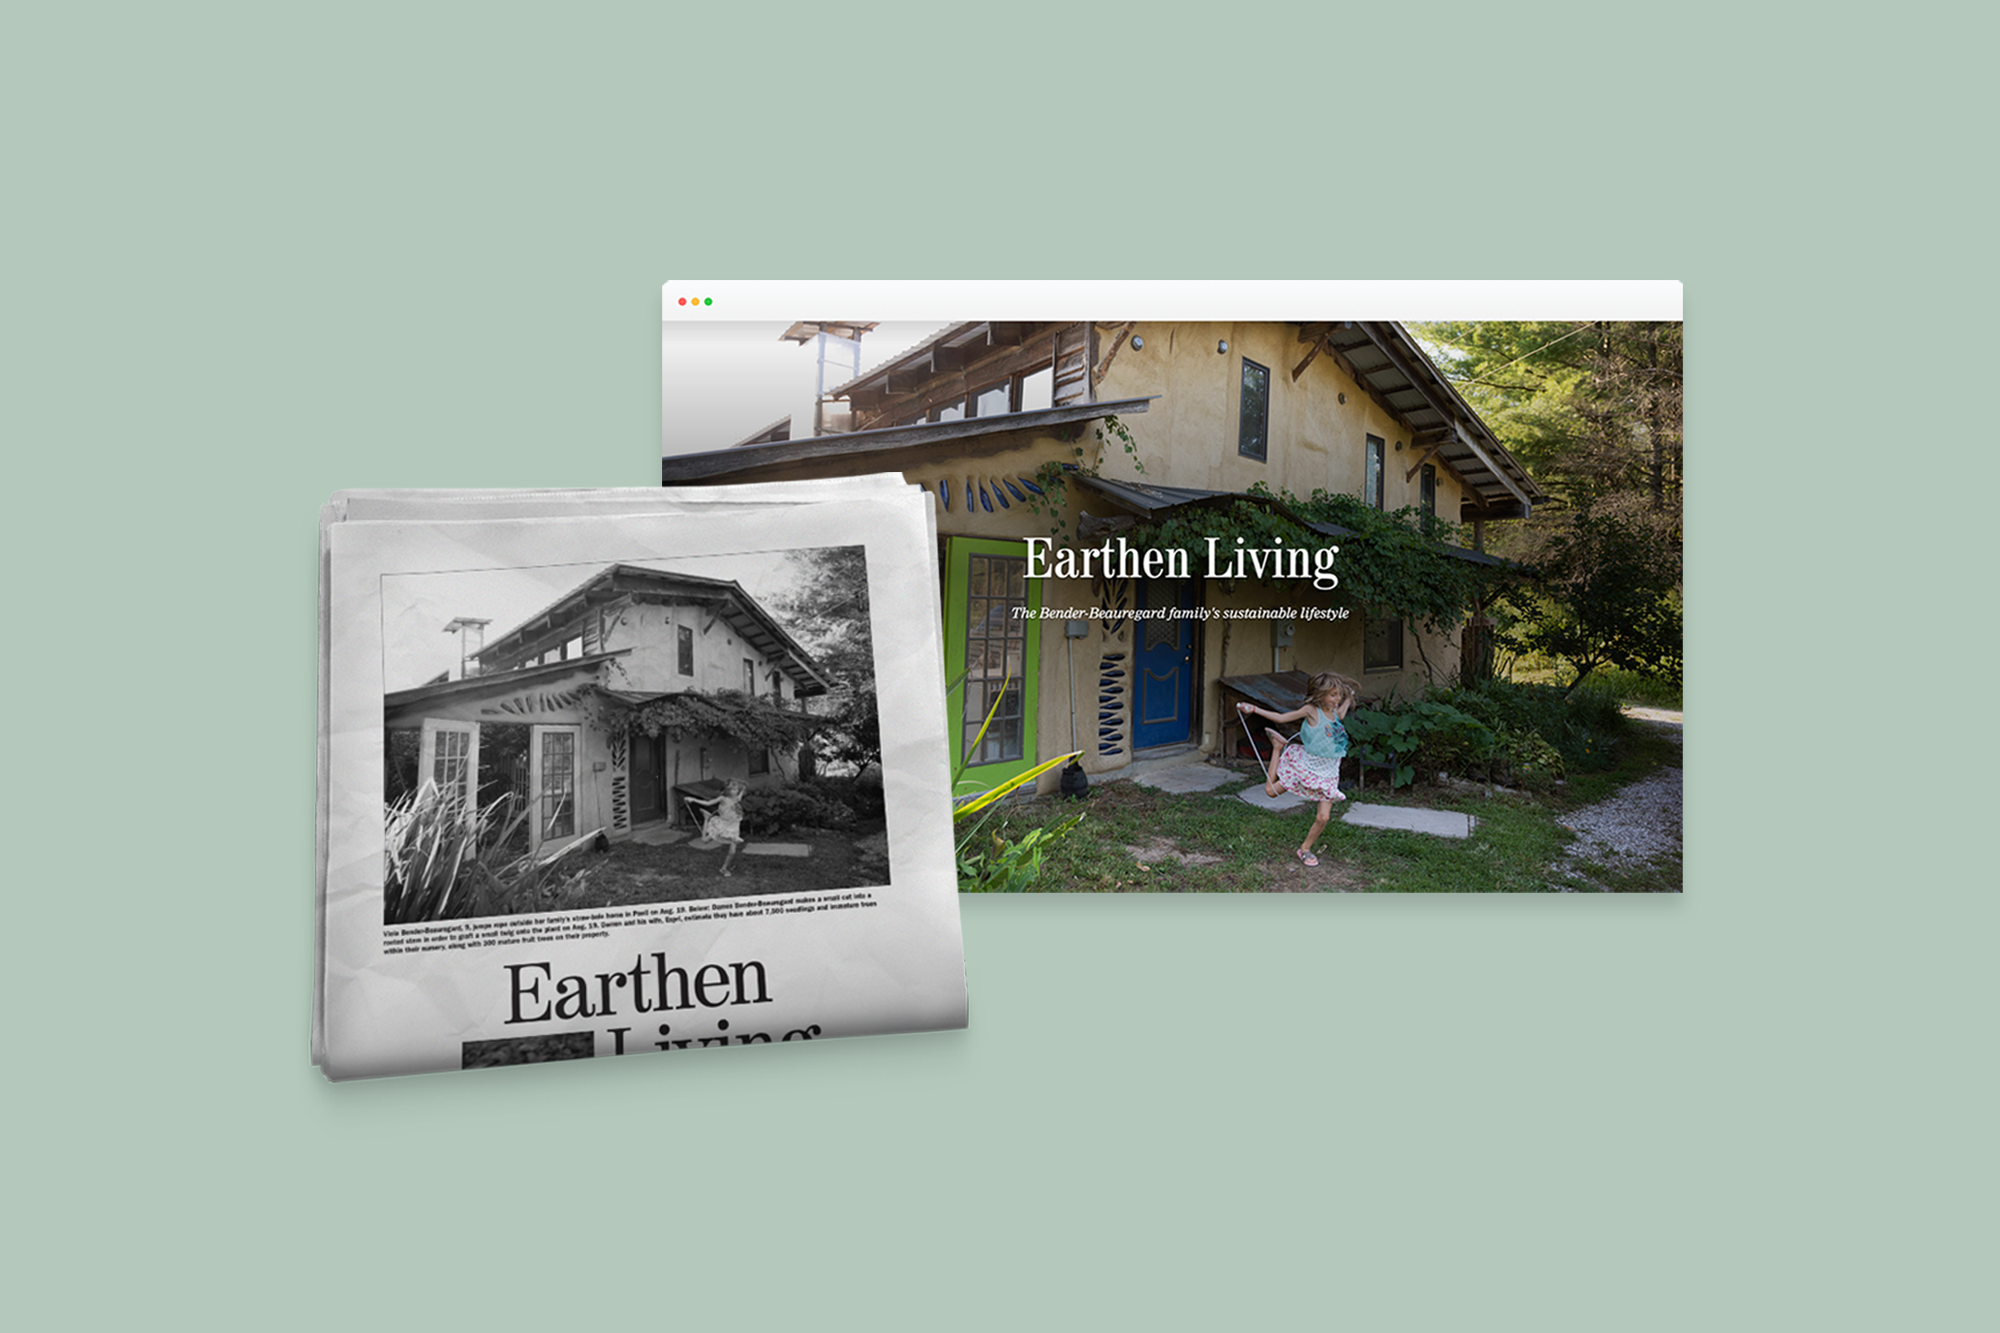 Mobile, newspaper and desktop of Earthen Living story, links to Community Journalism